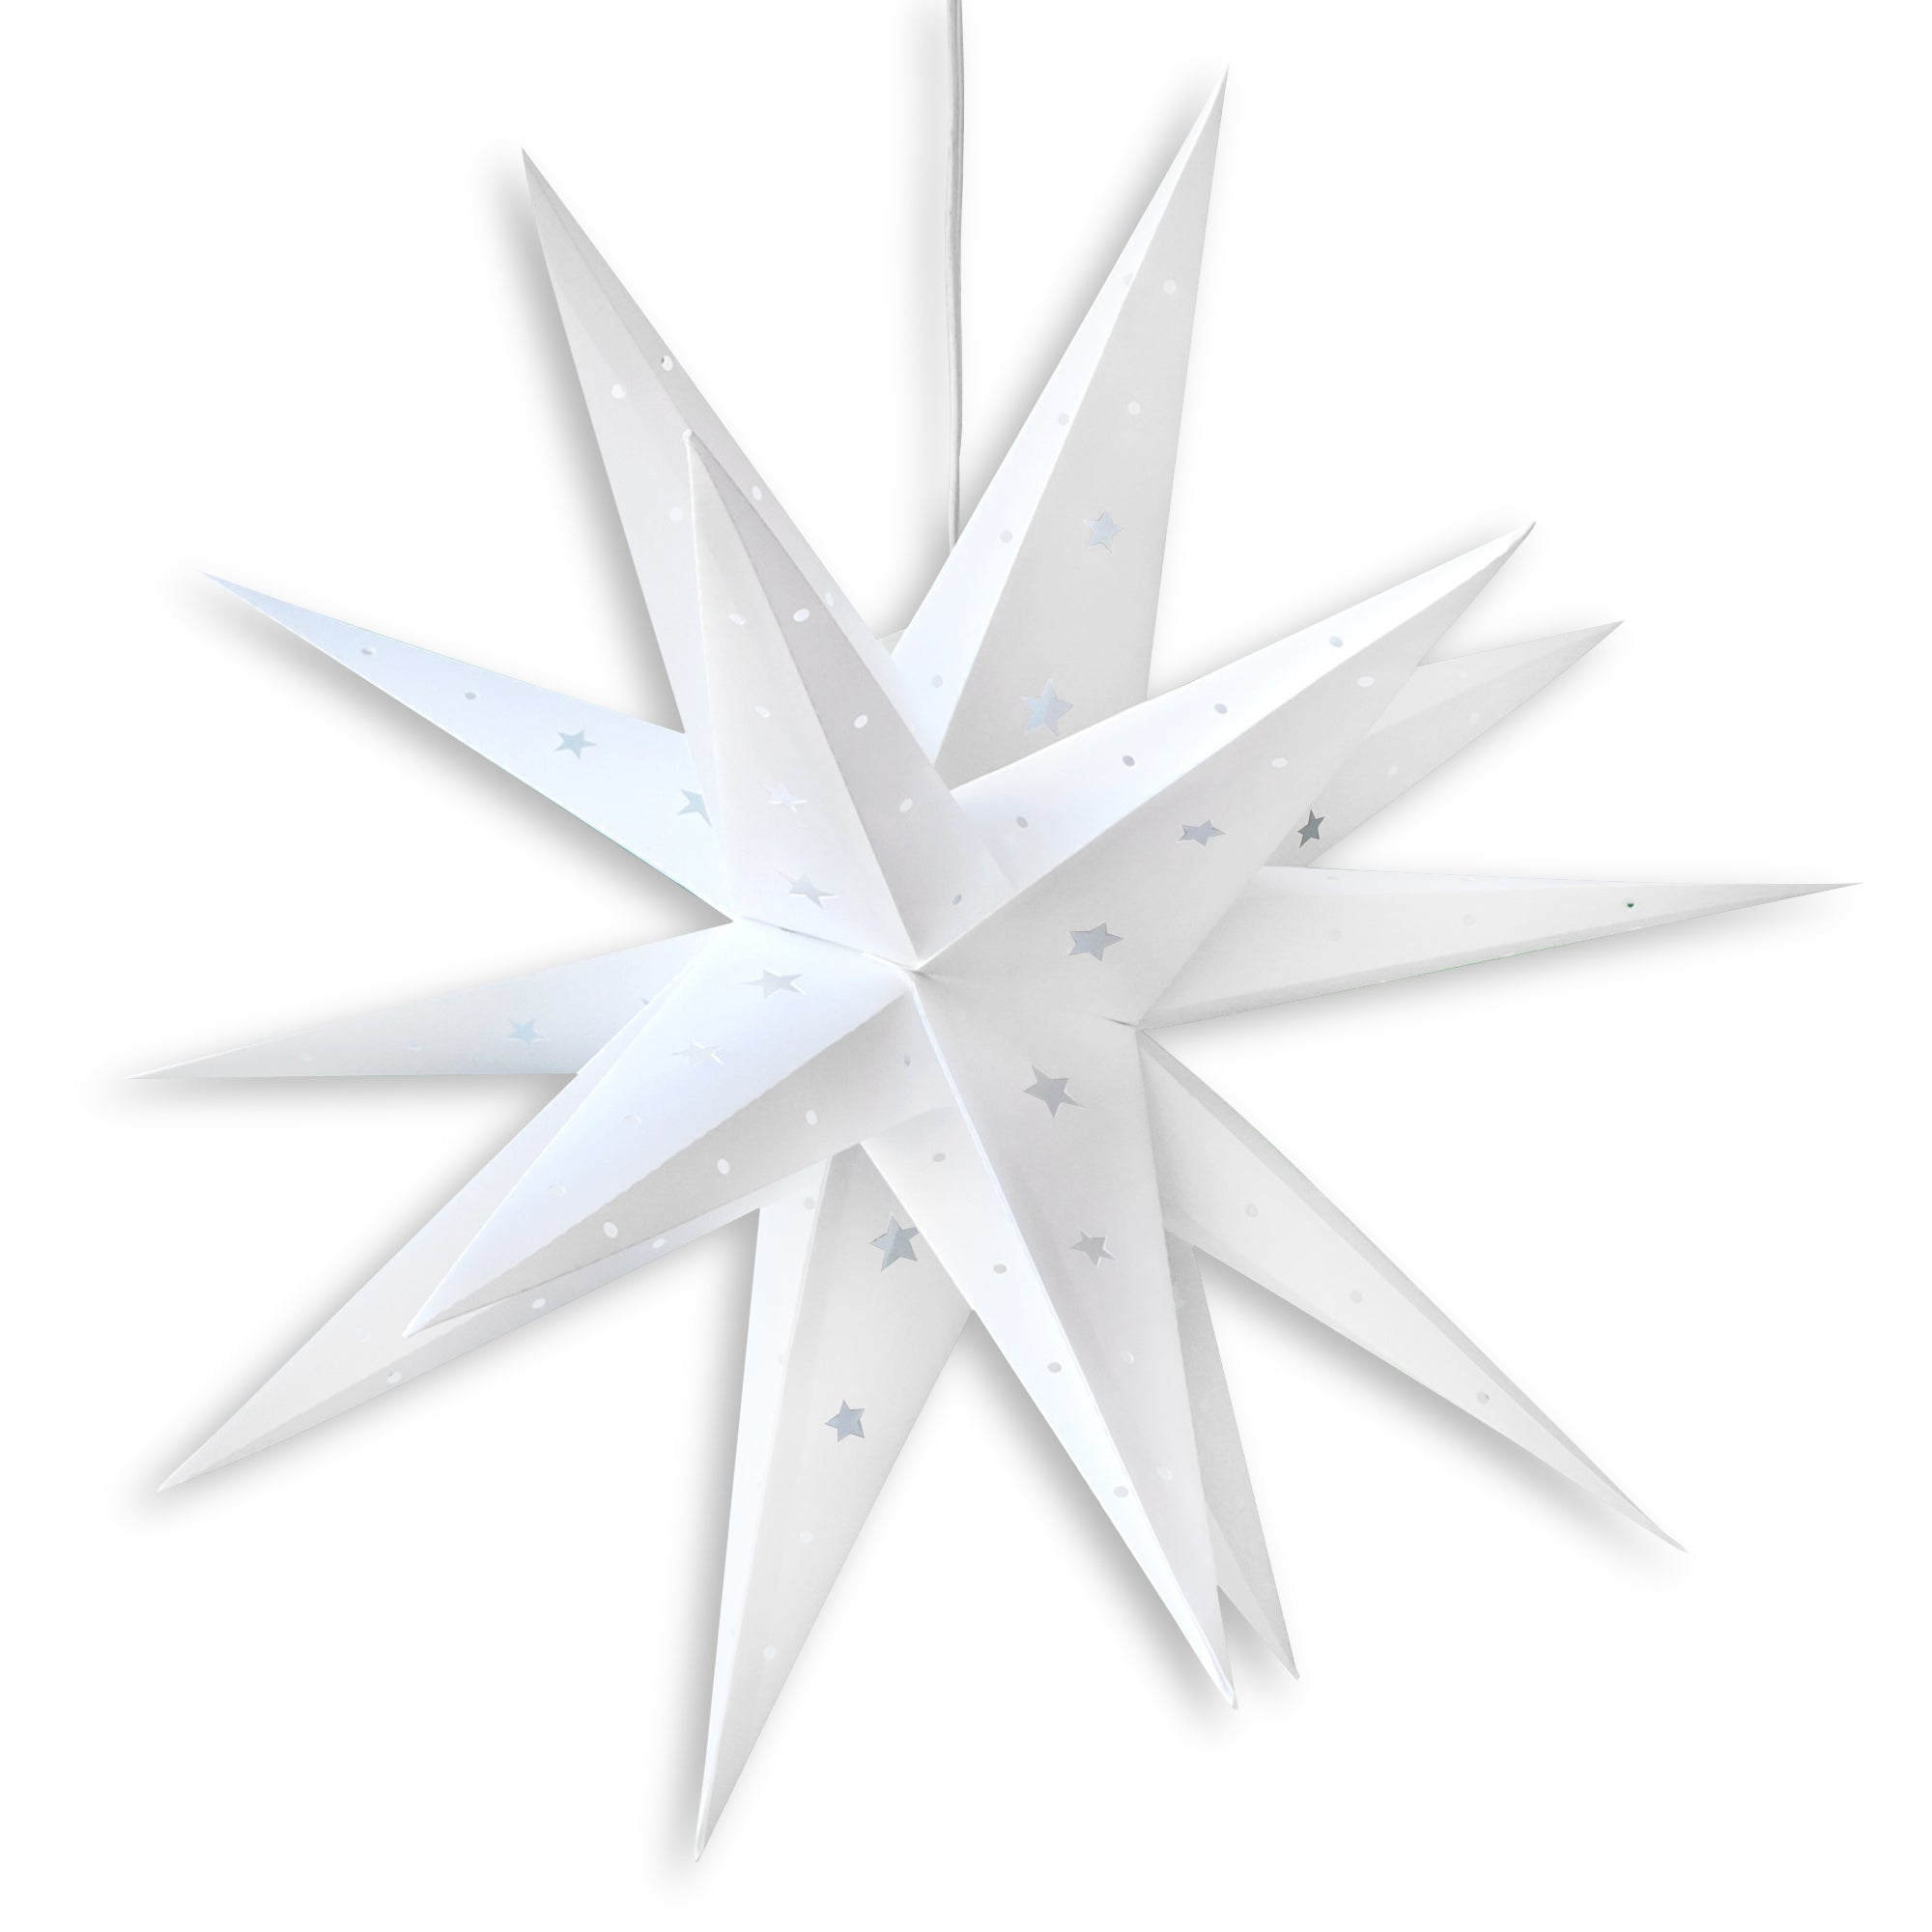 "24"" White Moravian Weatherproof Star Lantern Lamp, Multi-Point Hanging Decoration - PaperLanternStore.com - Paper Lanterns, Decor, Party Lights & More"